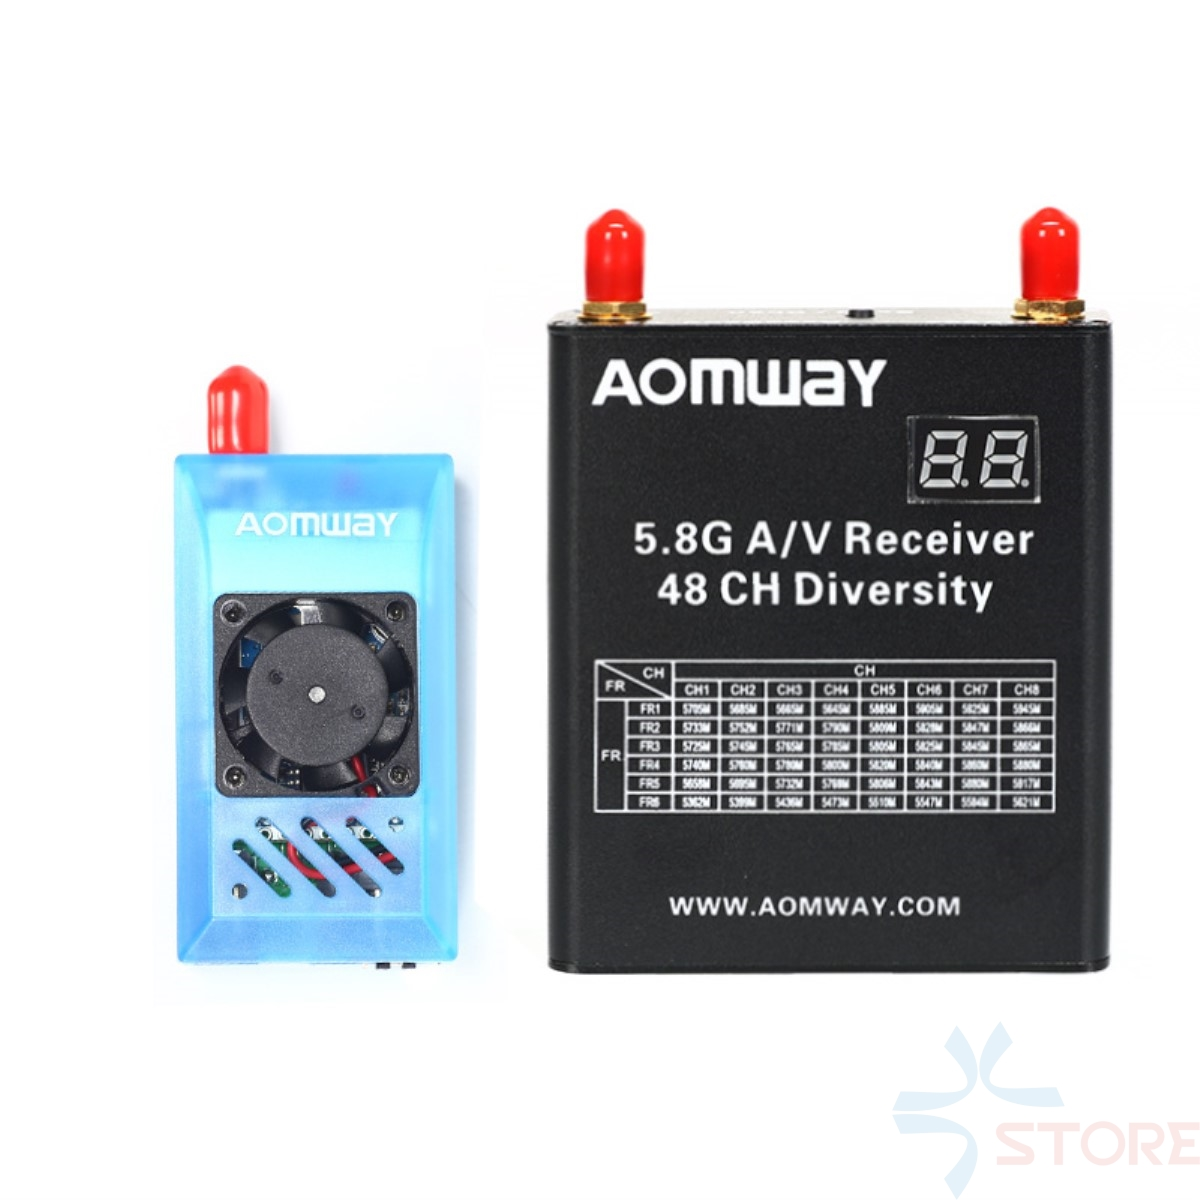 Aomway 5.8Ghz 1W 1000mW 32CH AV Audio Video Transmitter and Receiver w/DVR Recorder function for FPV